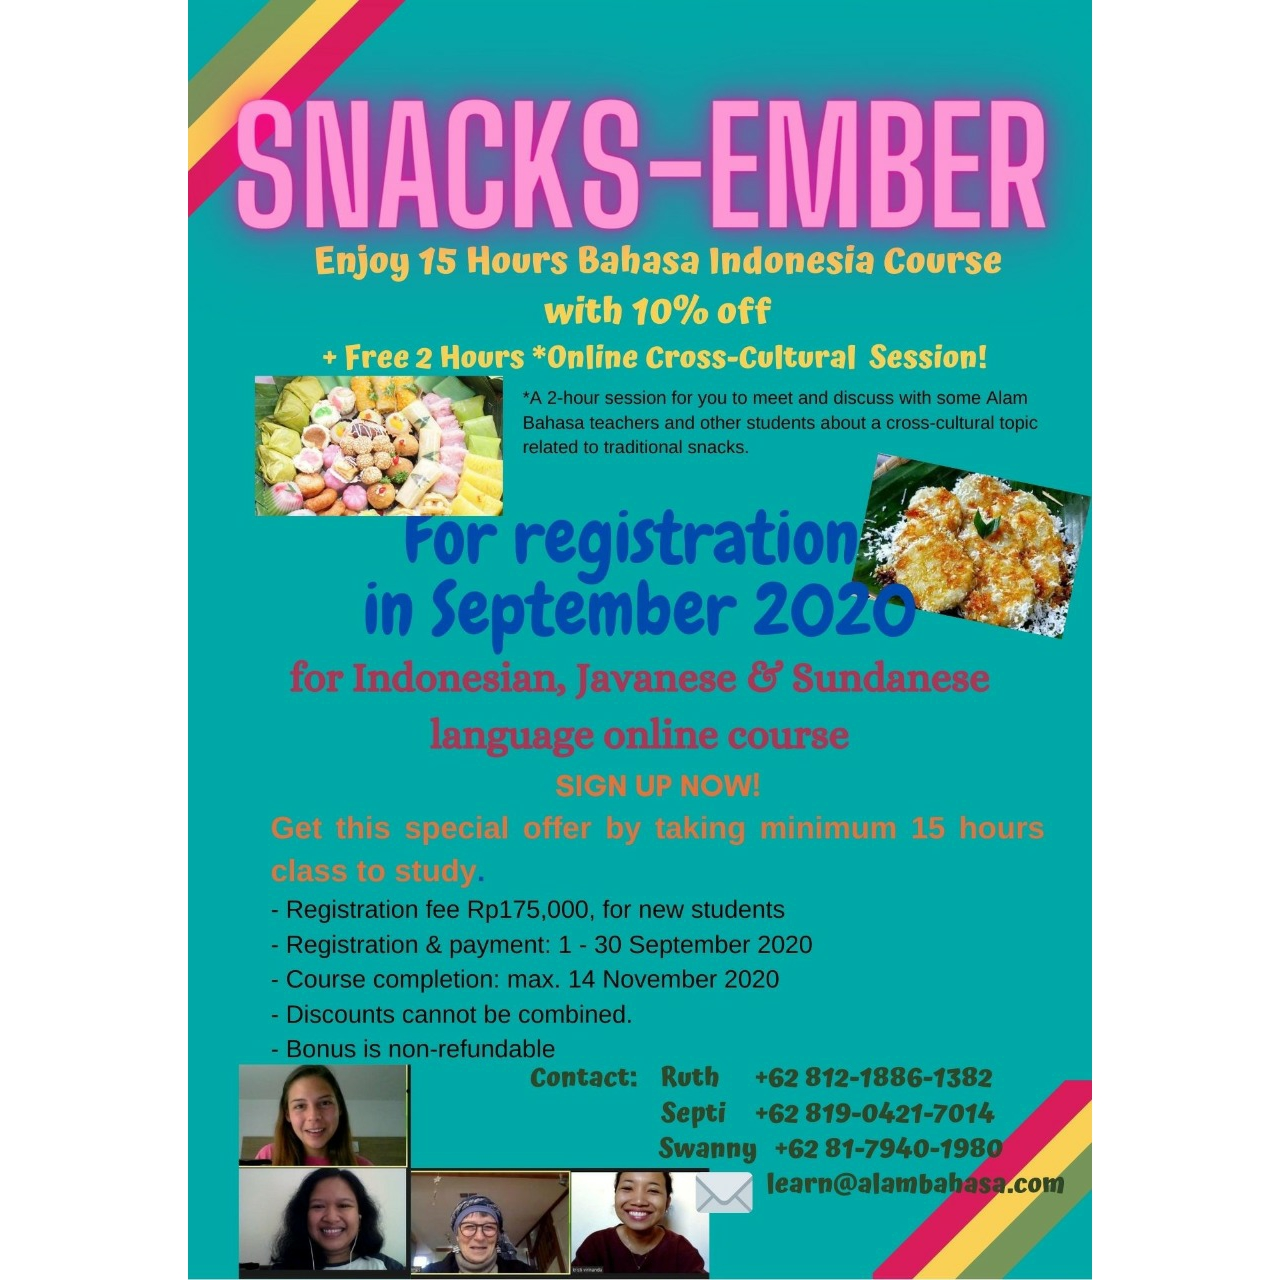 Snacks-ember -- September Promo